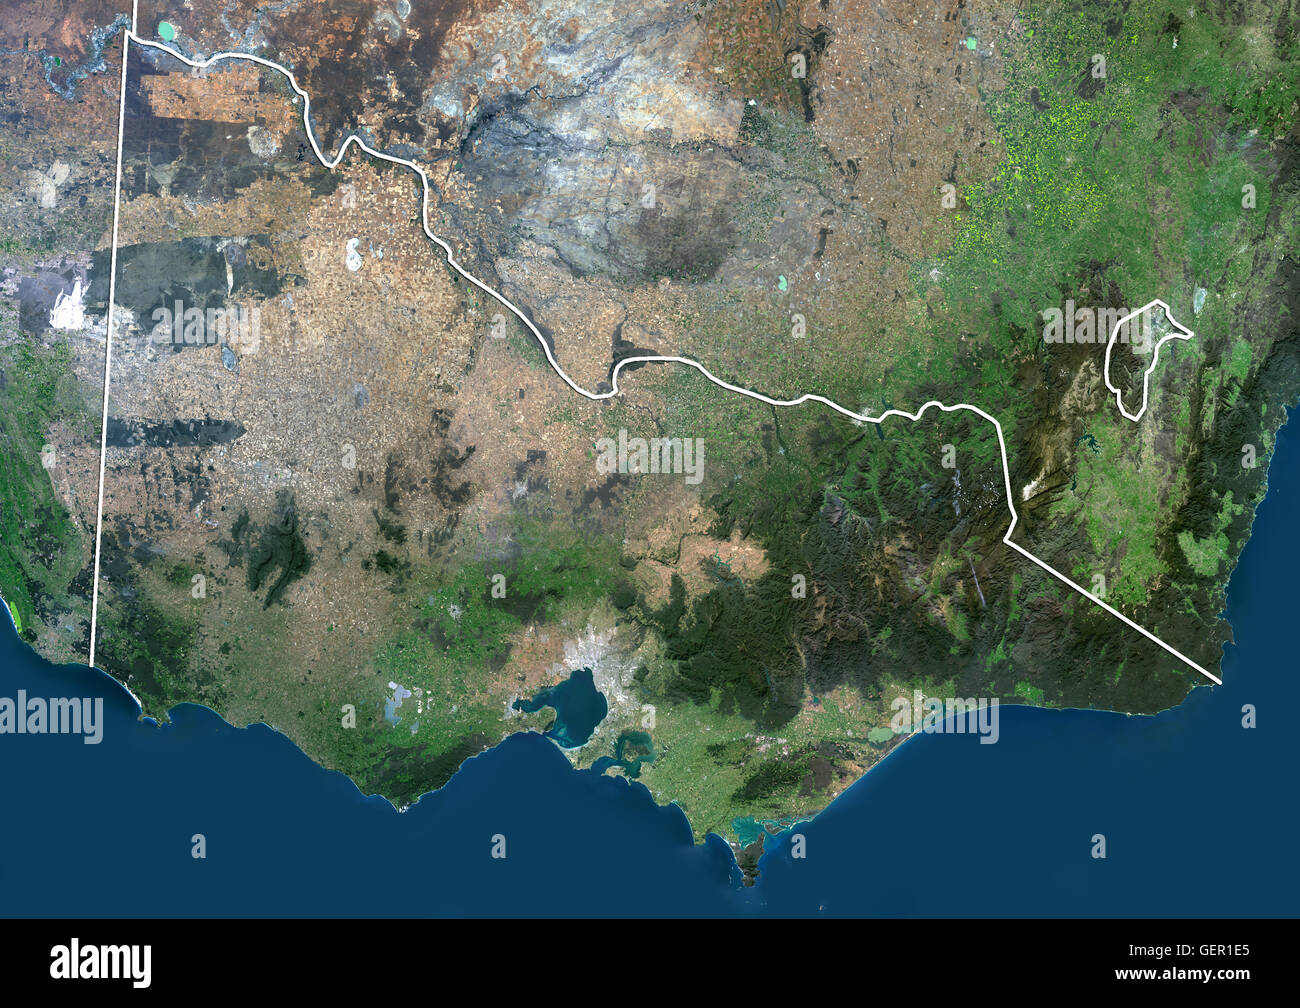 satellite view of victoria australia with administrative boundaries this image was compiled from data acquired by landsat 8 satellite in 2014